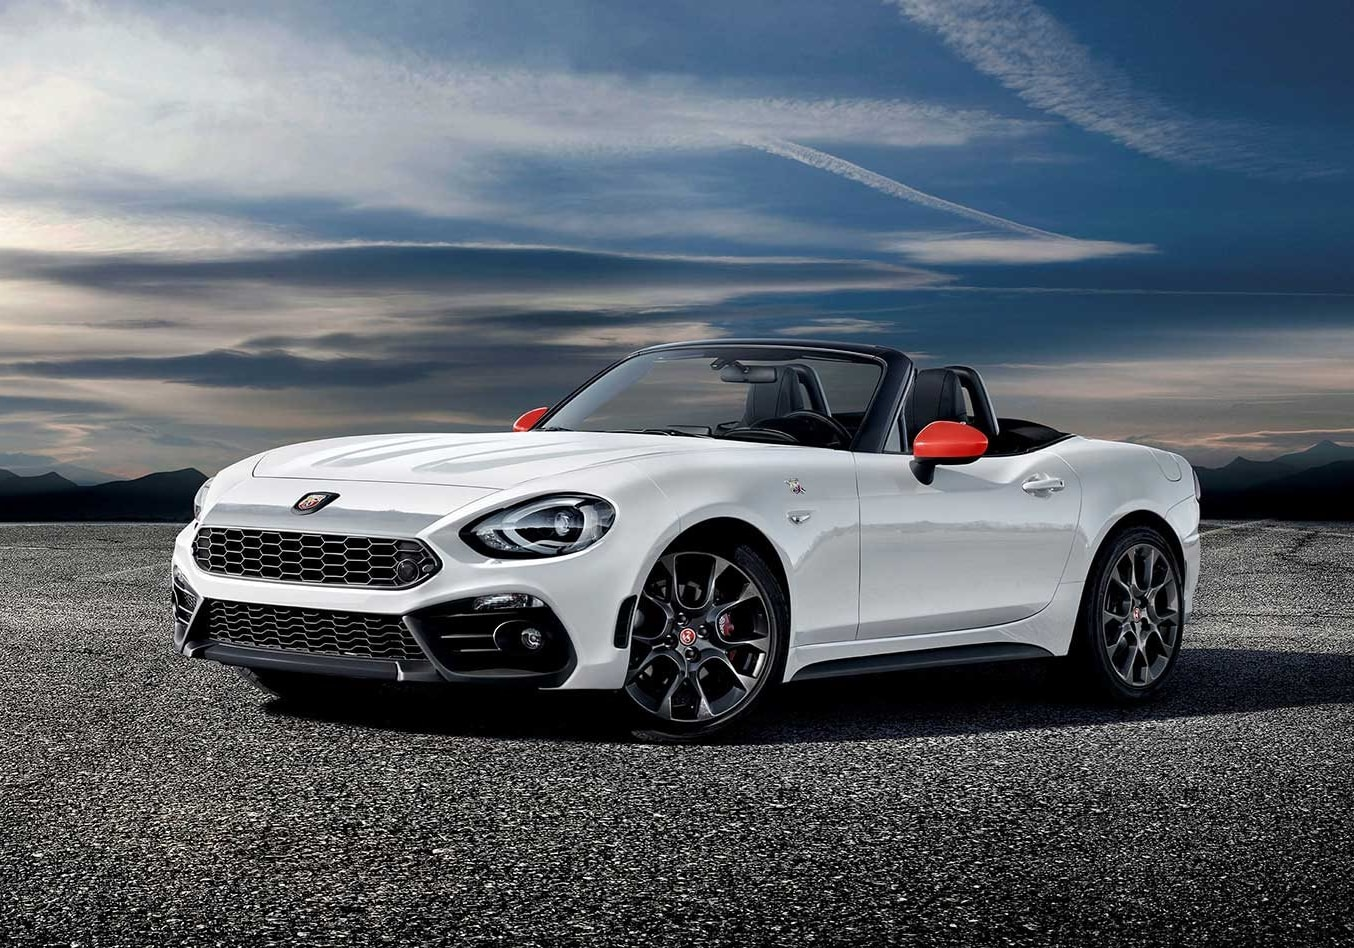 2018 Abarth 124 Spider Monza Edition revealed